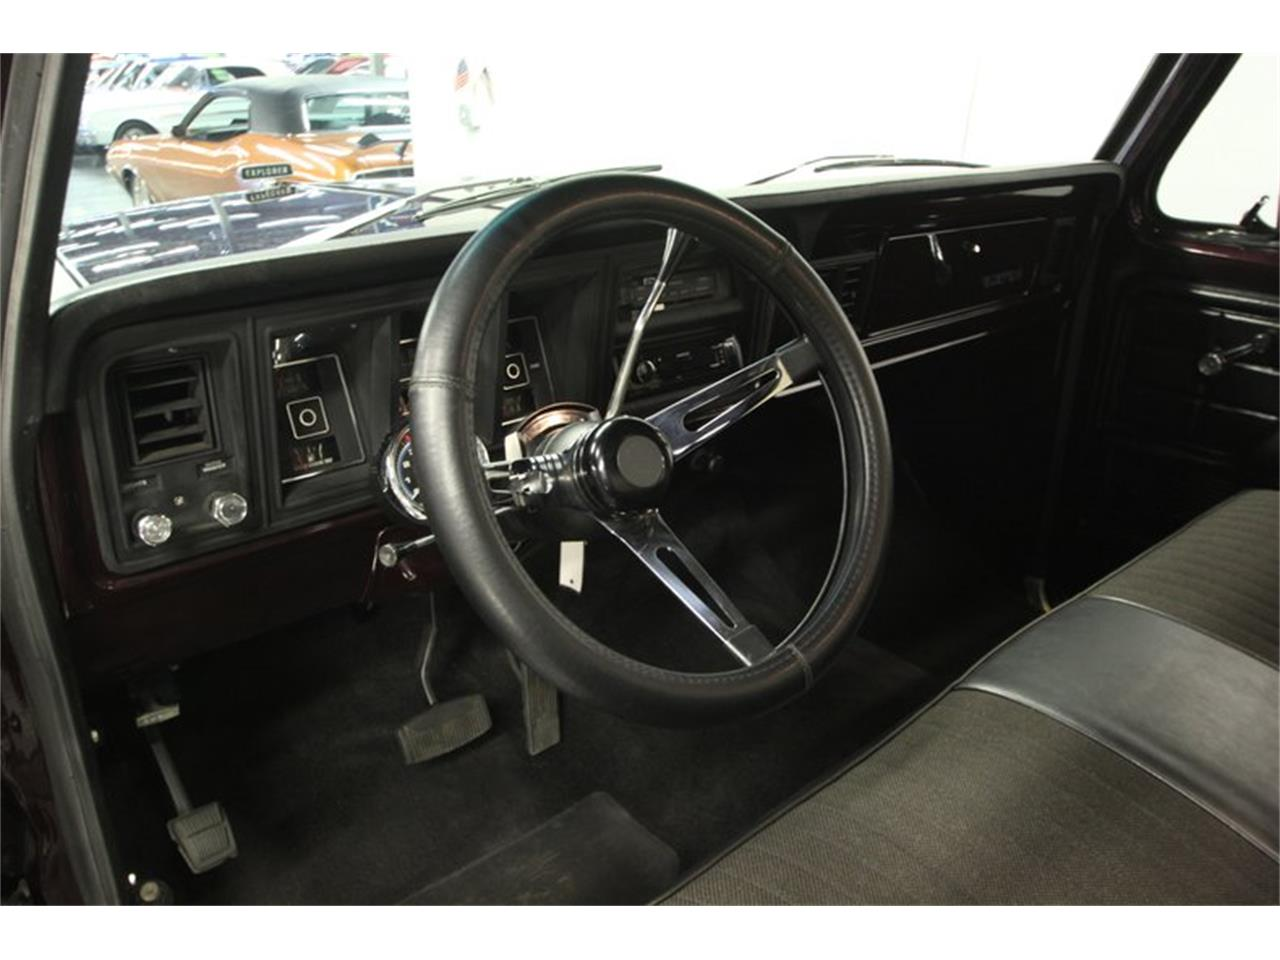 1977 Ford F100 for sale in Lutz, FL – photo 45